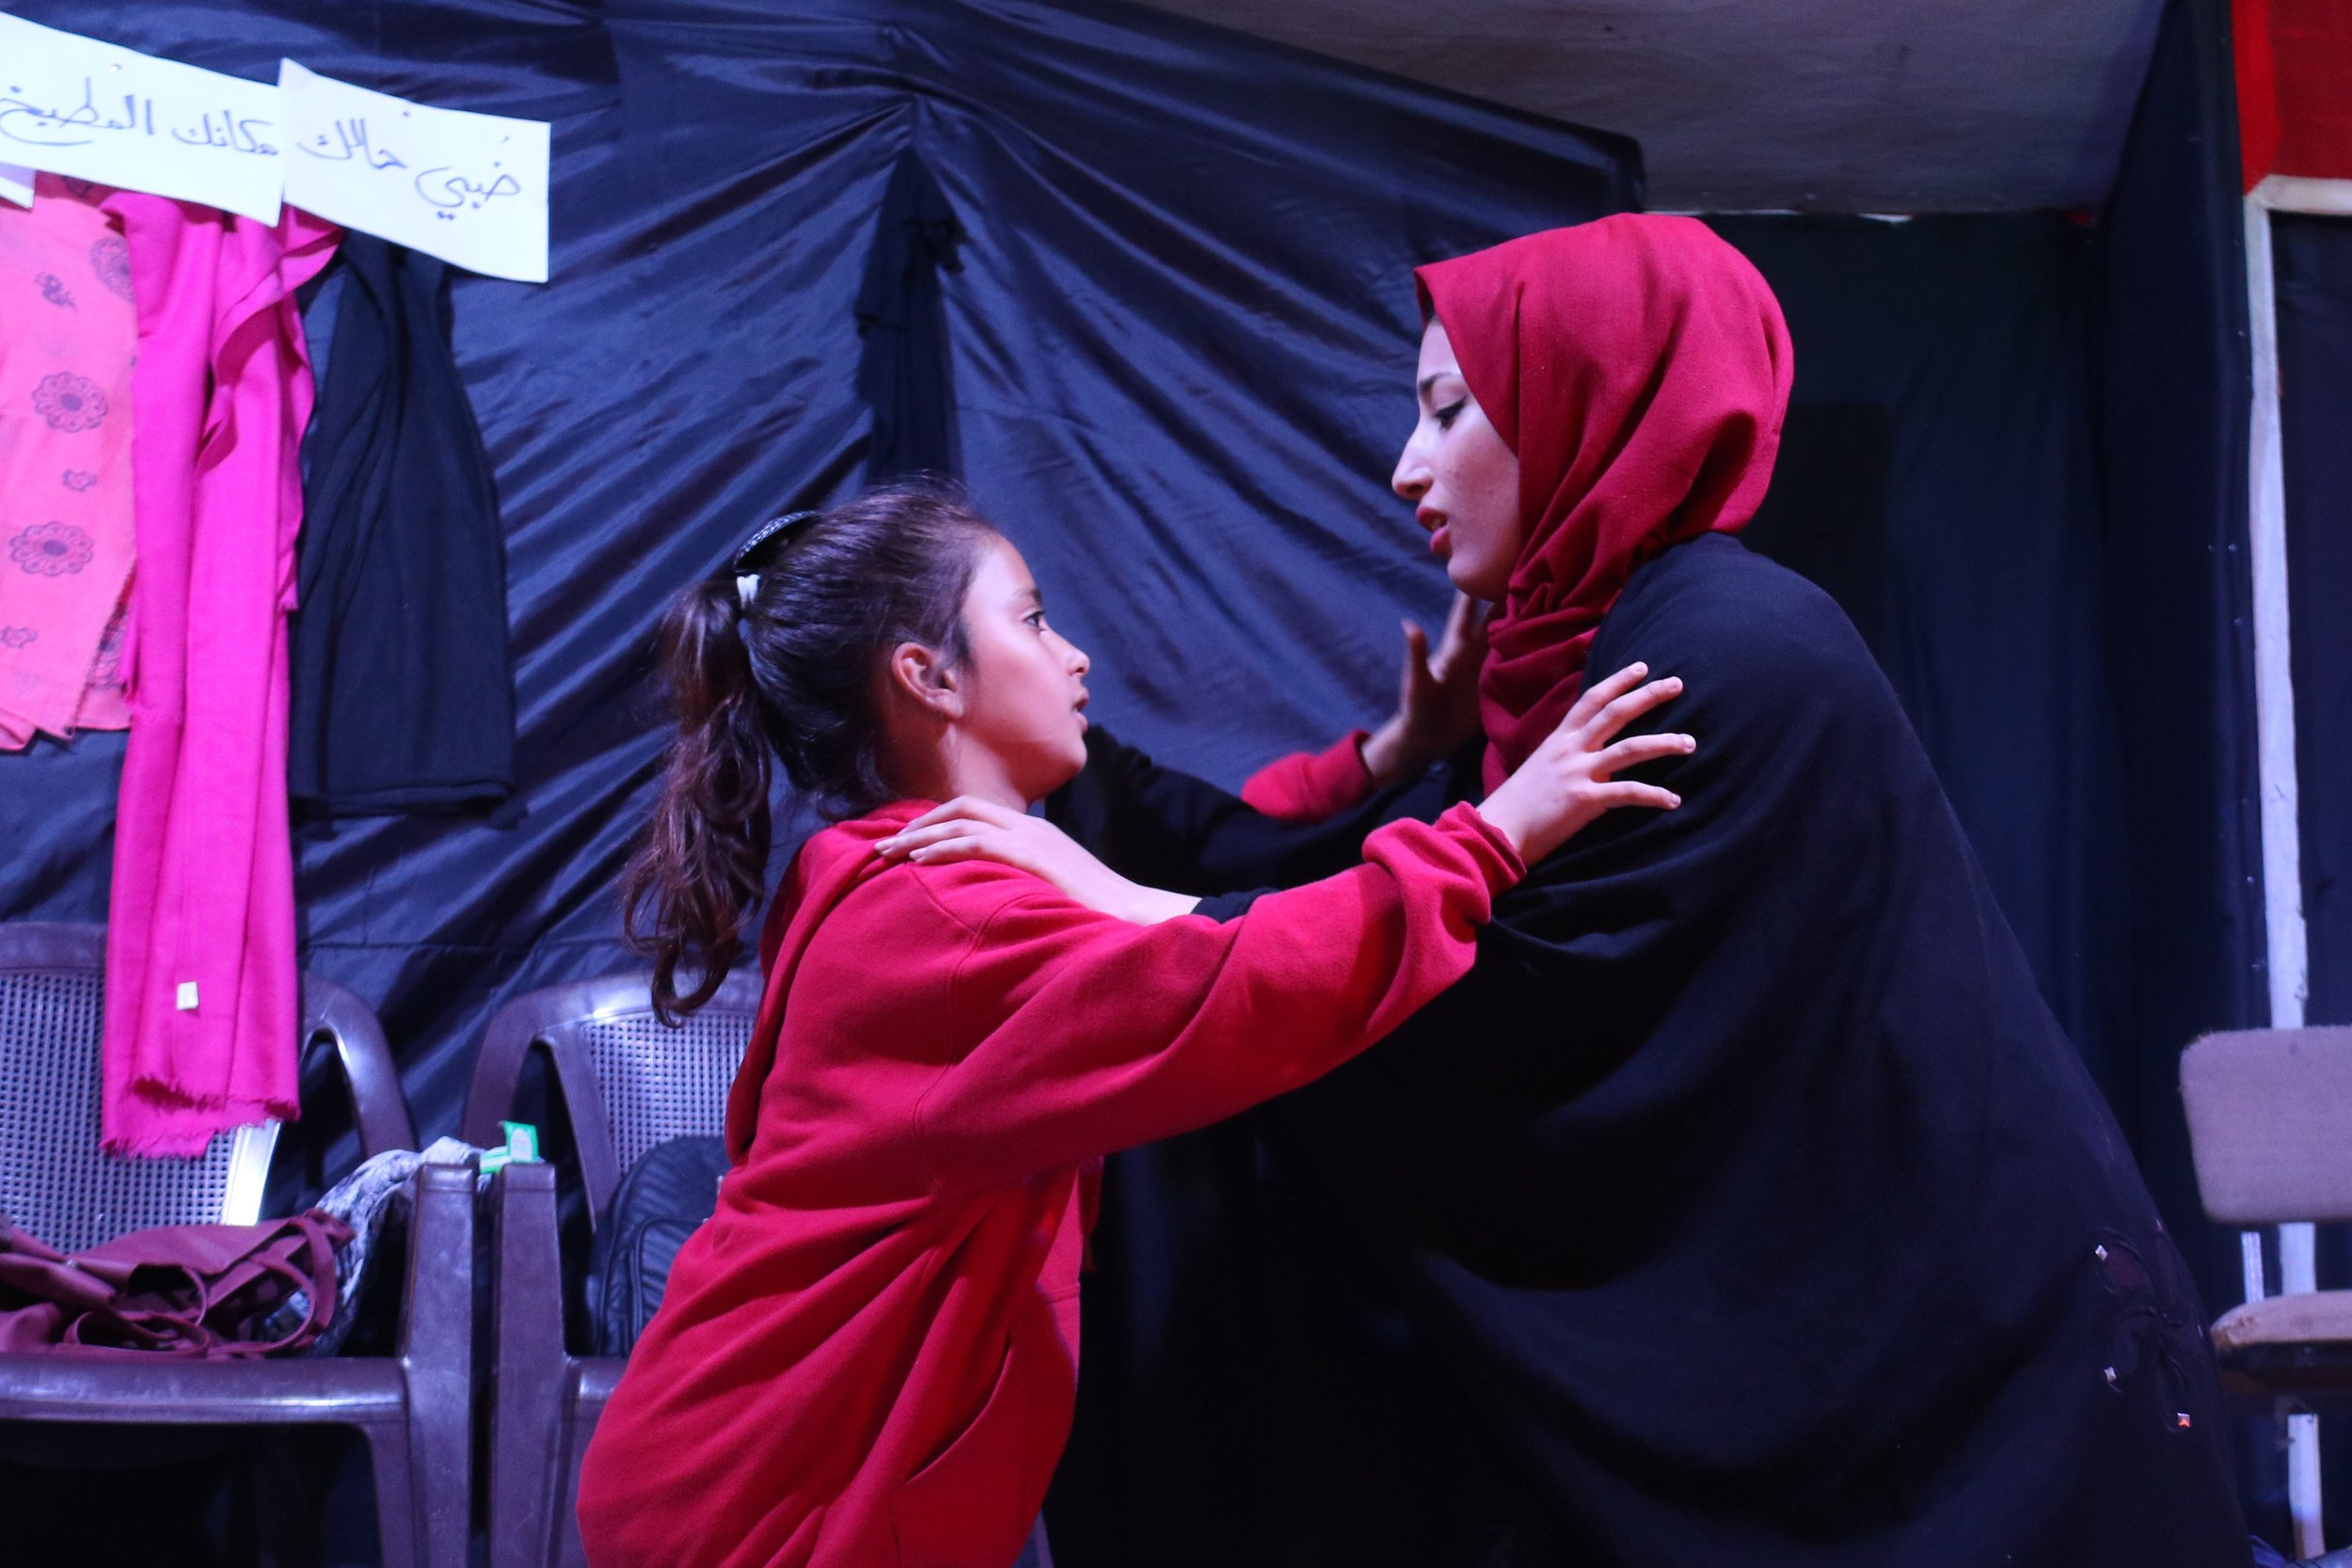 Wefaq_Theatre performance scene 1 (002).jpg